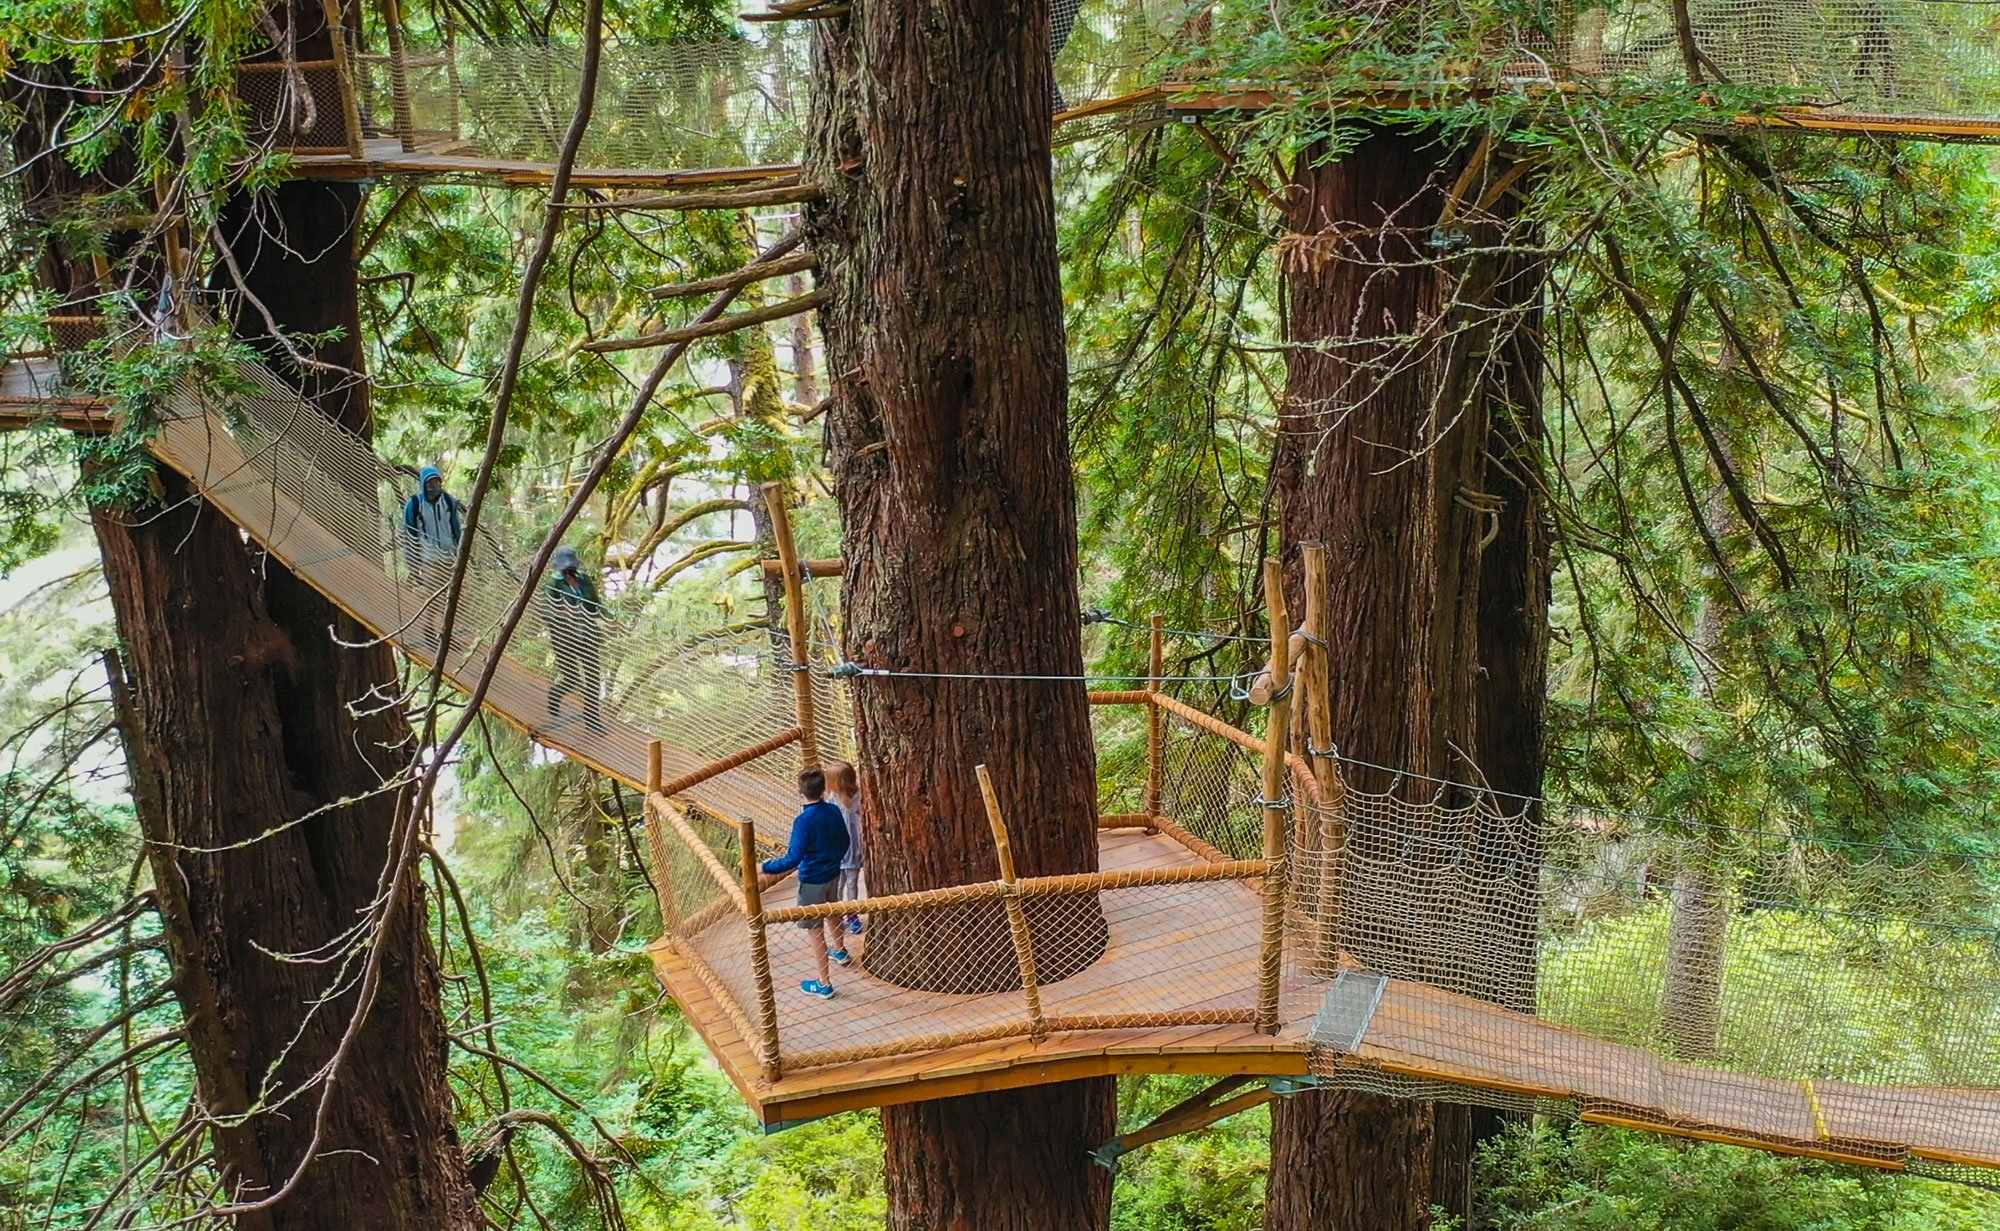 Stroll Up to 100-Feet High in a Redwood Tree Canopy Along the Redwood Canopy Trail at Trees of Mystery